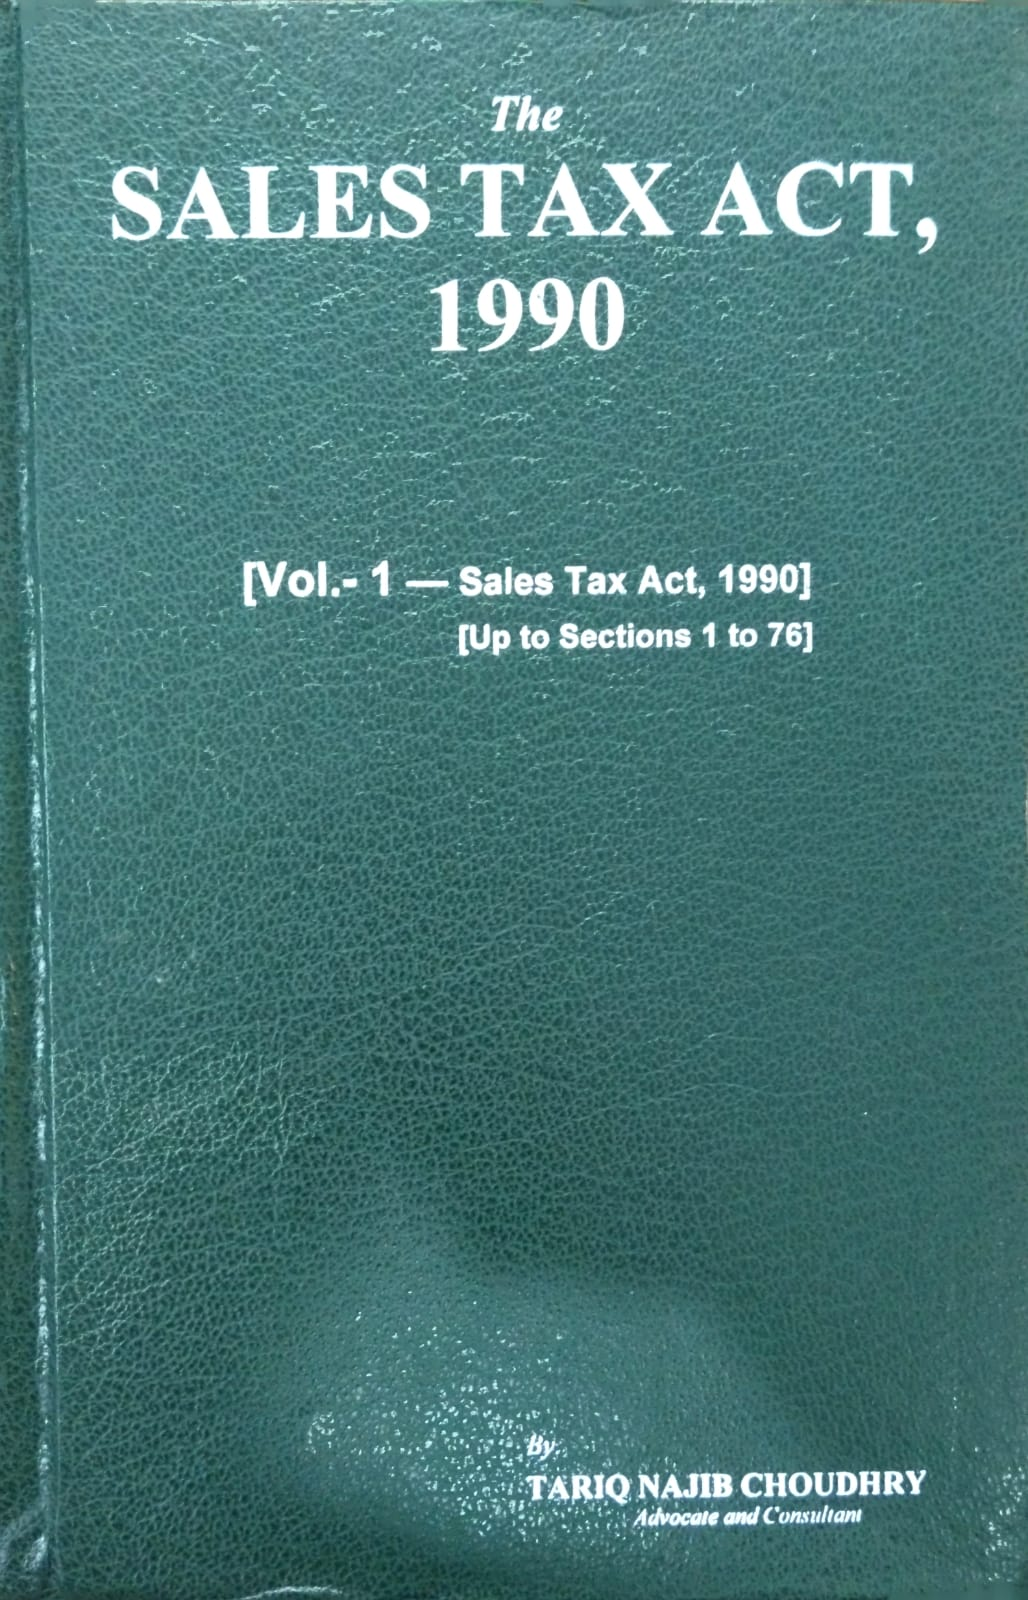 The Sales Tax Act, 1990 71st Edition (Amended upto 25th July, 2021) in 02 Vols.